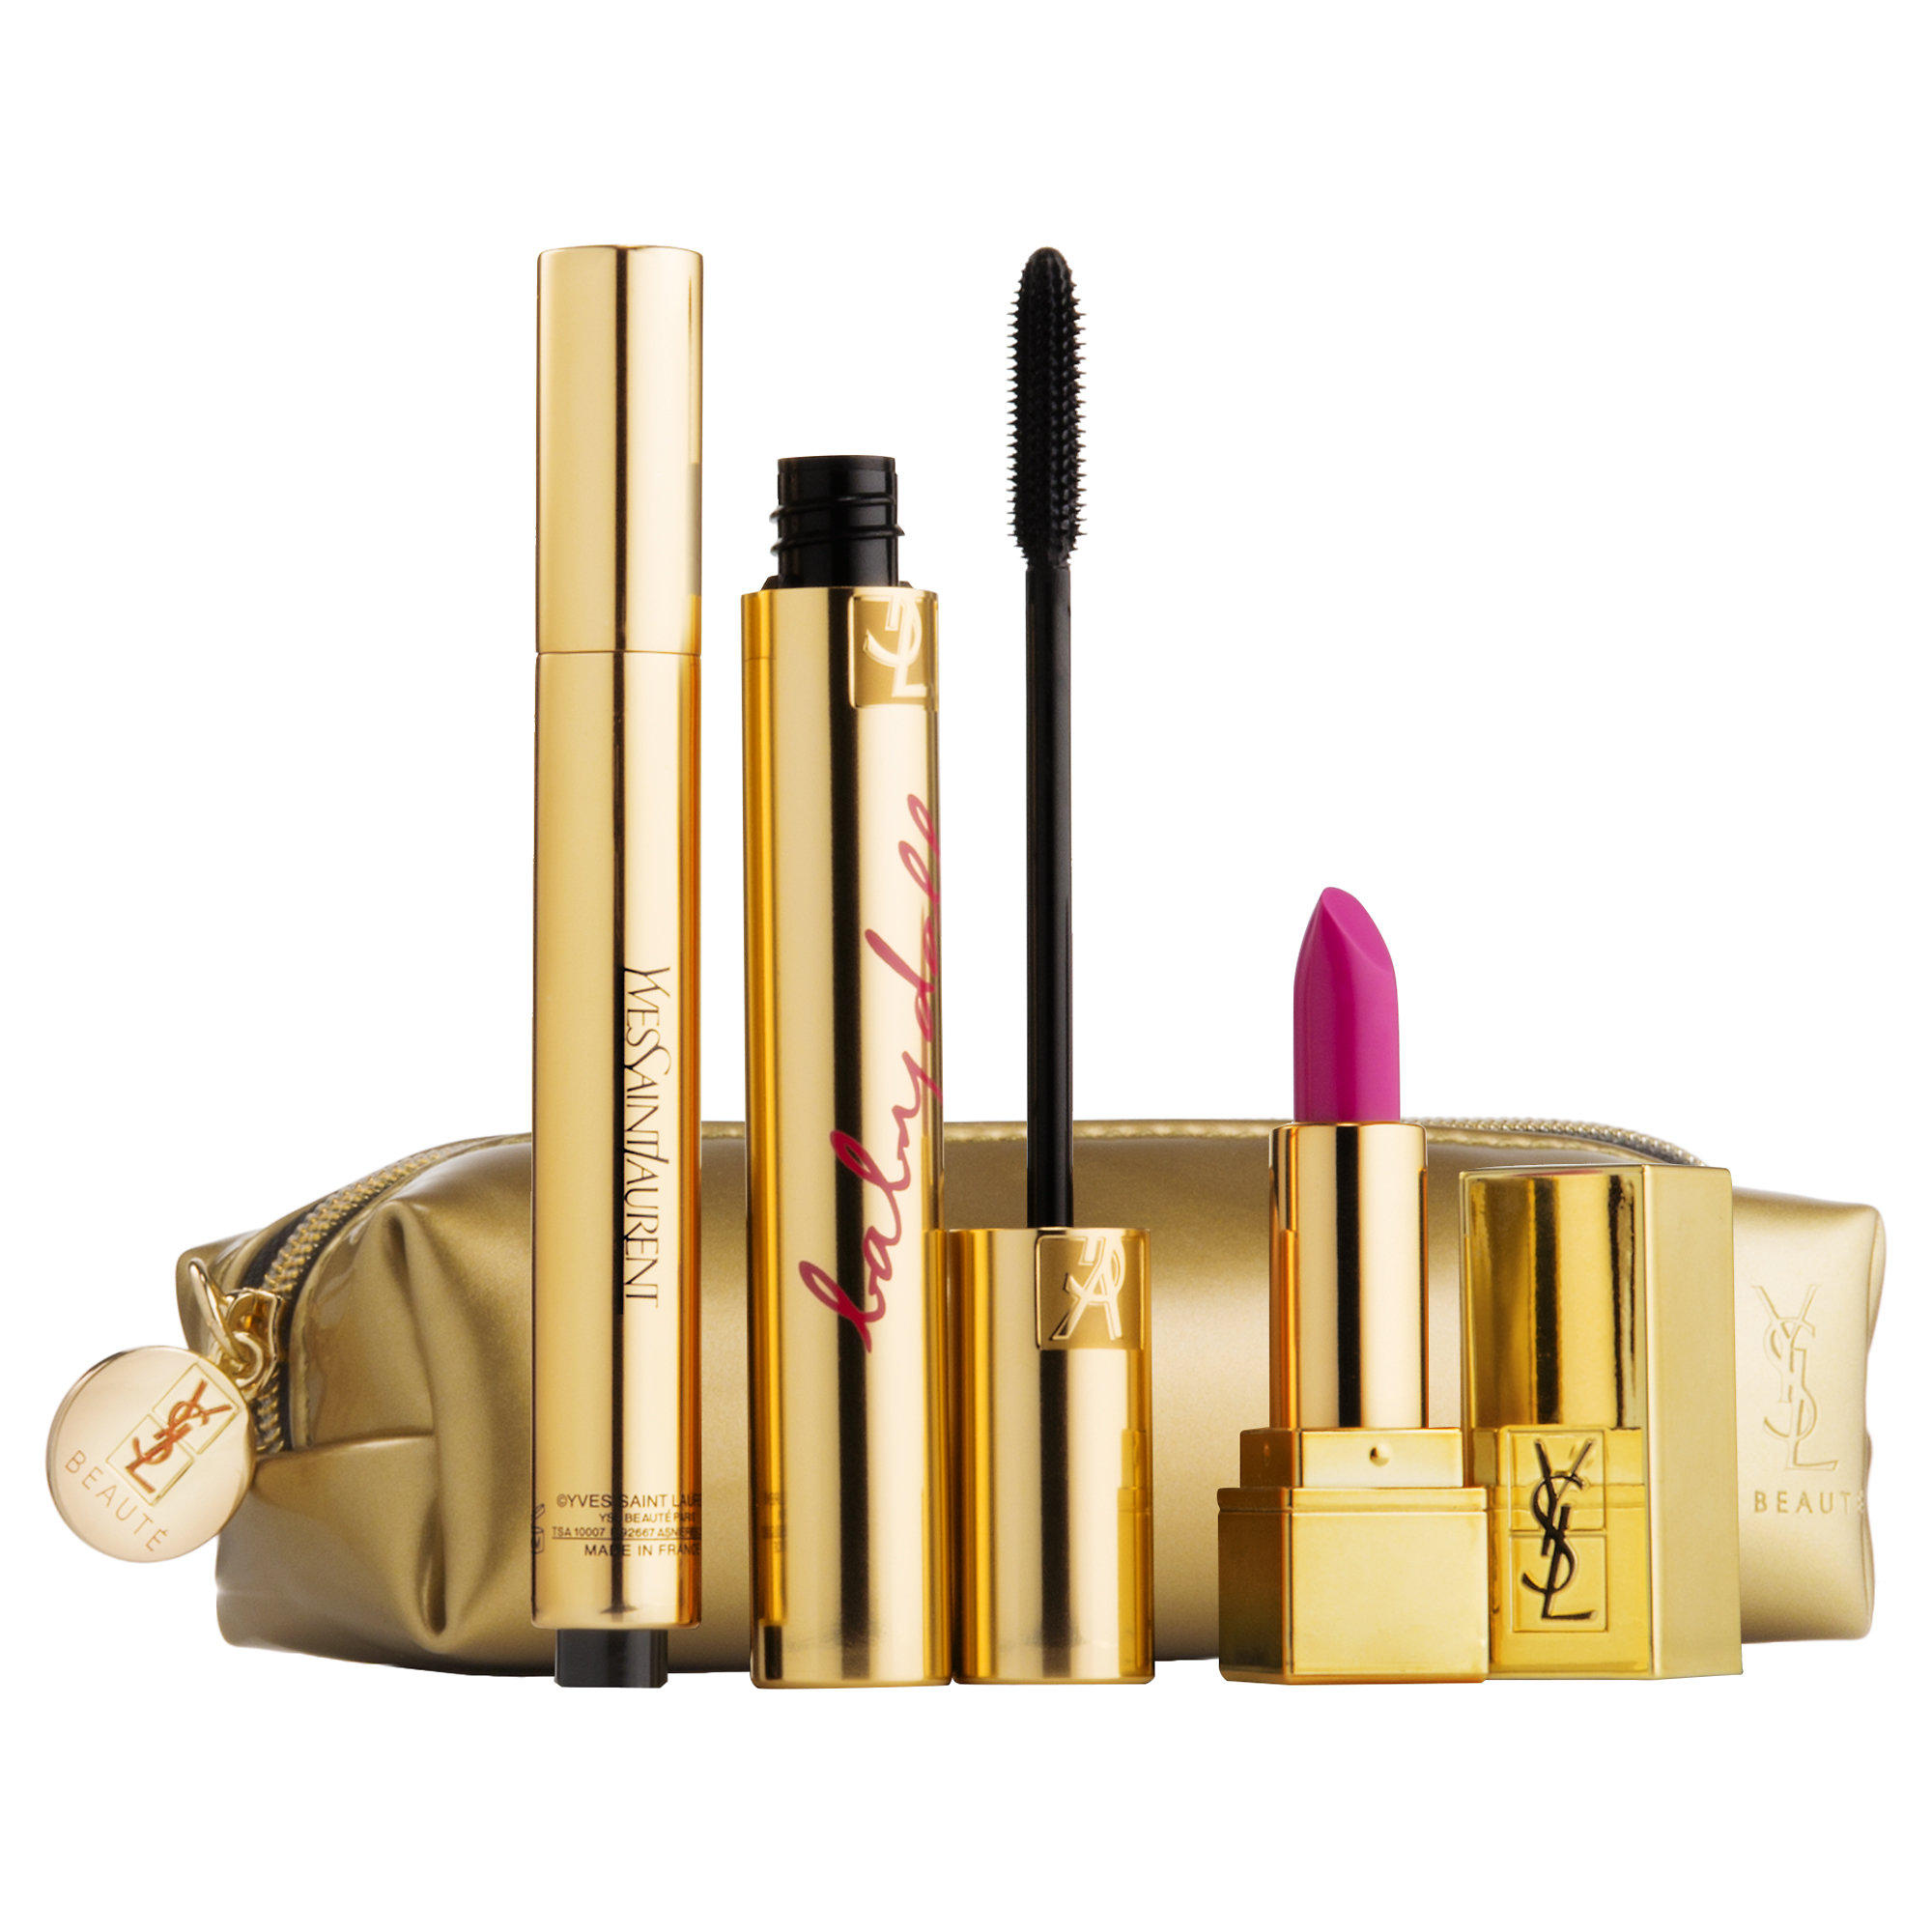 YSL launched New Beauty Icons Set